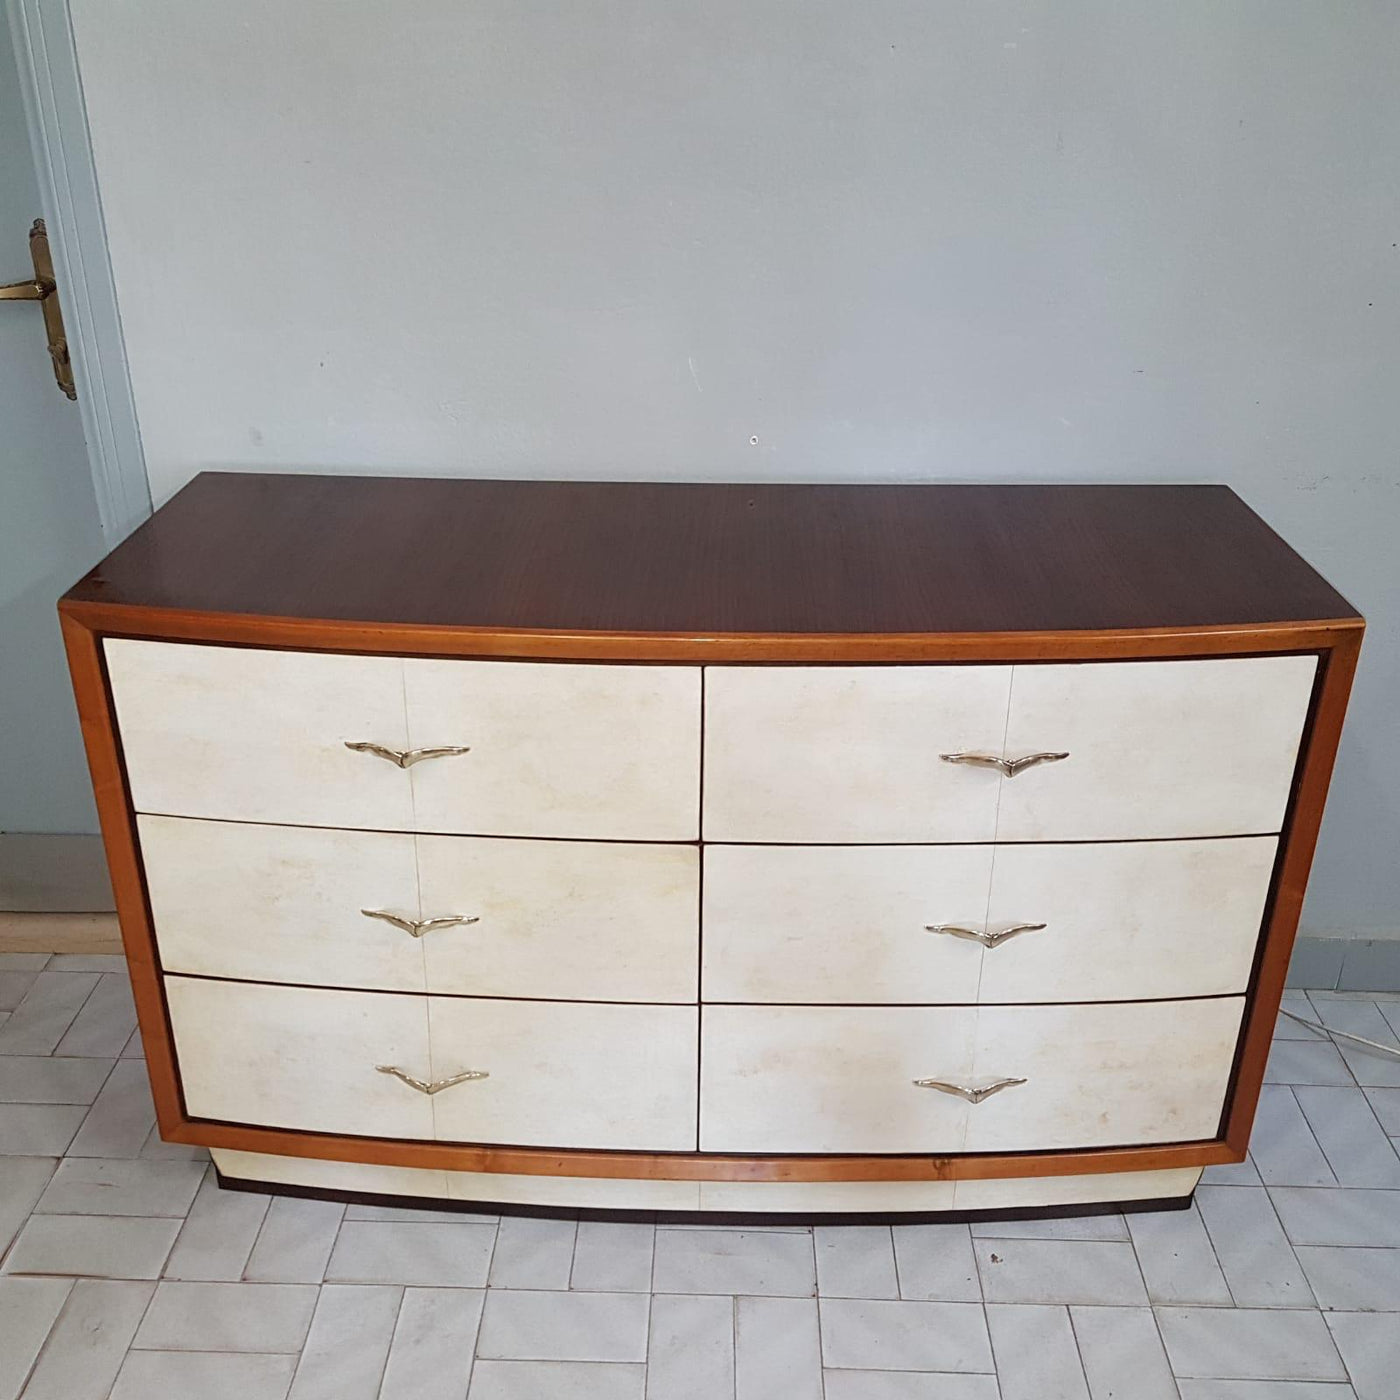 #6349-CAGG - Art Deco Wood & Pergamena Chest of Drawers